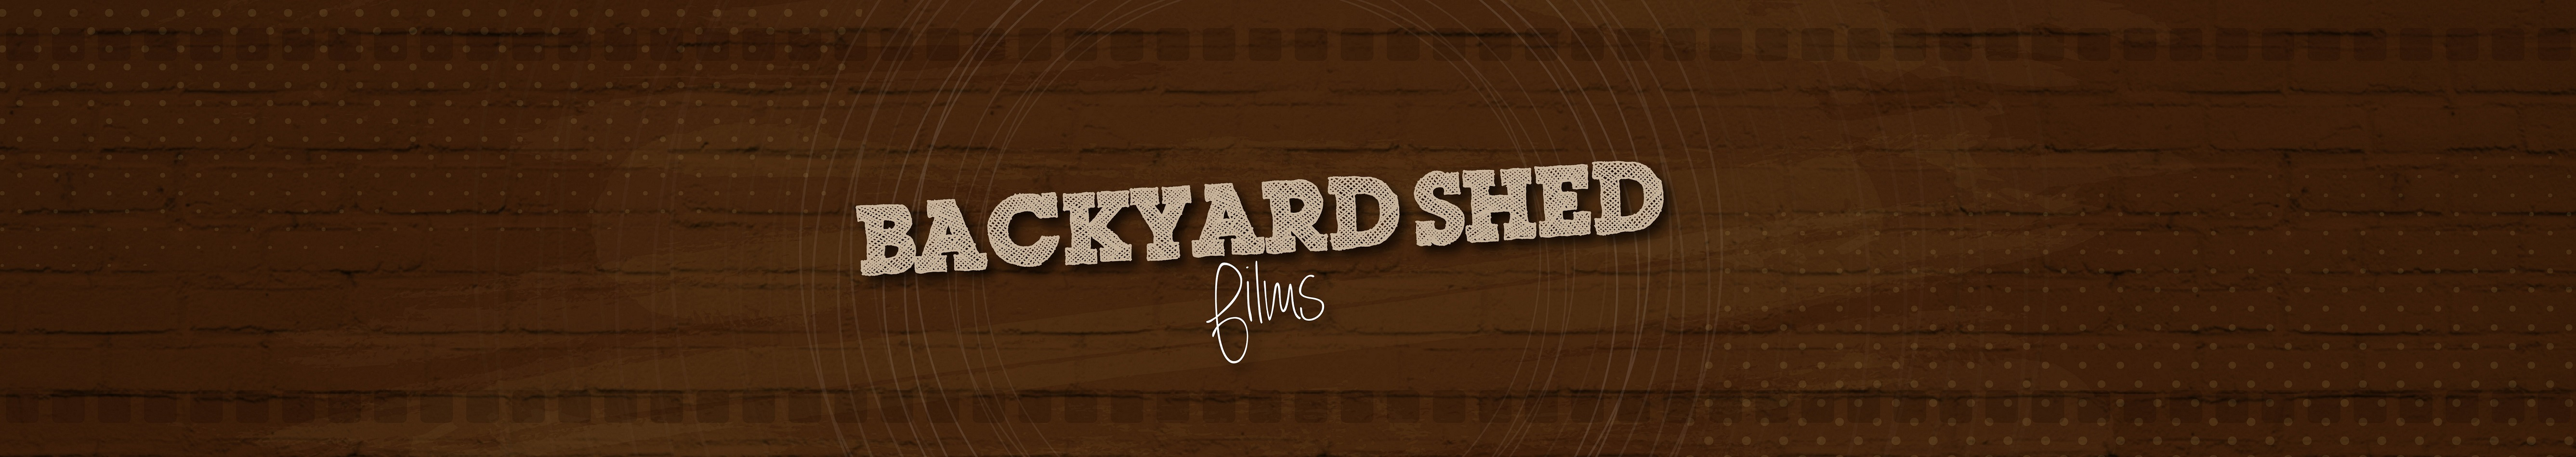 BuddyPress Login | Backyard Shed Films